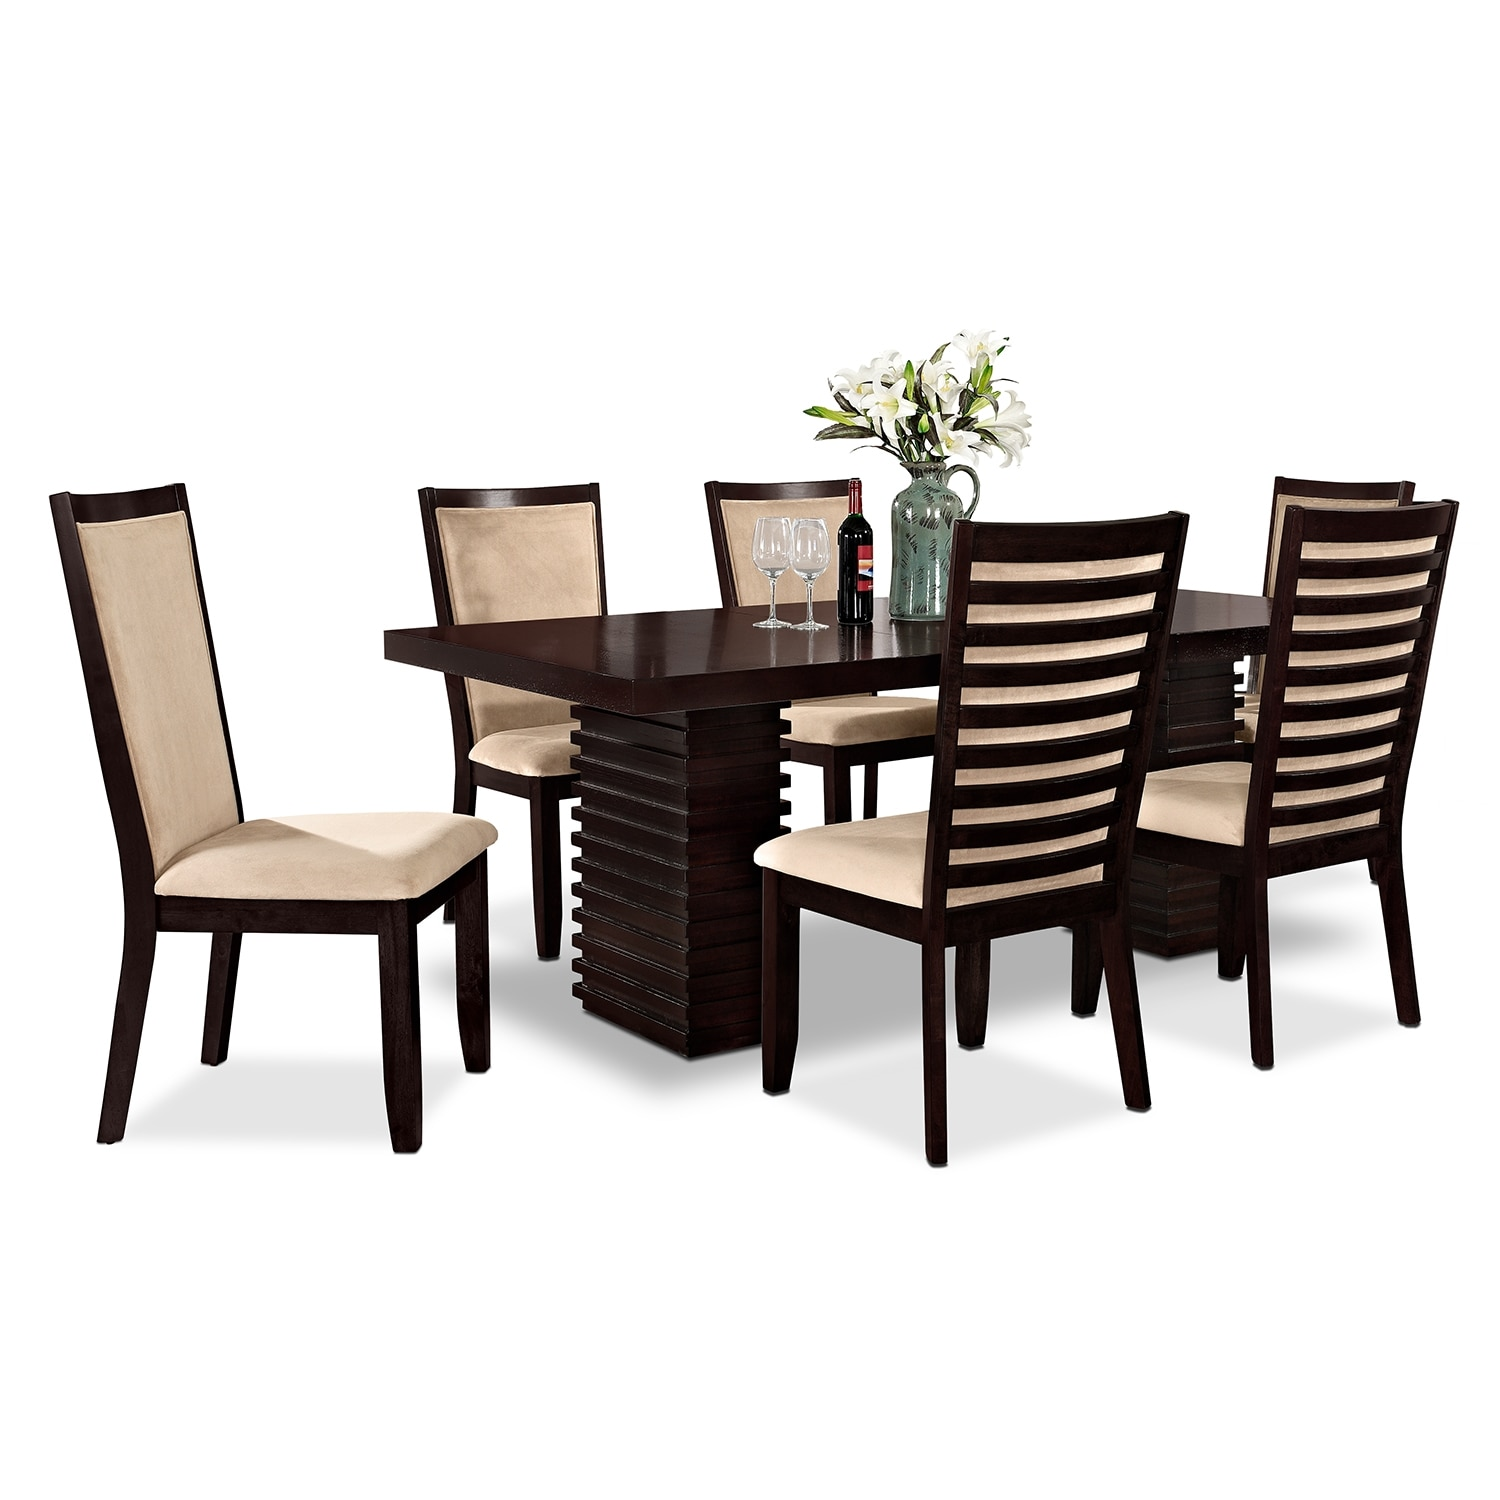 Paragon Table and 6 Chairs - Merlot and Camel